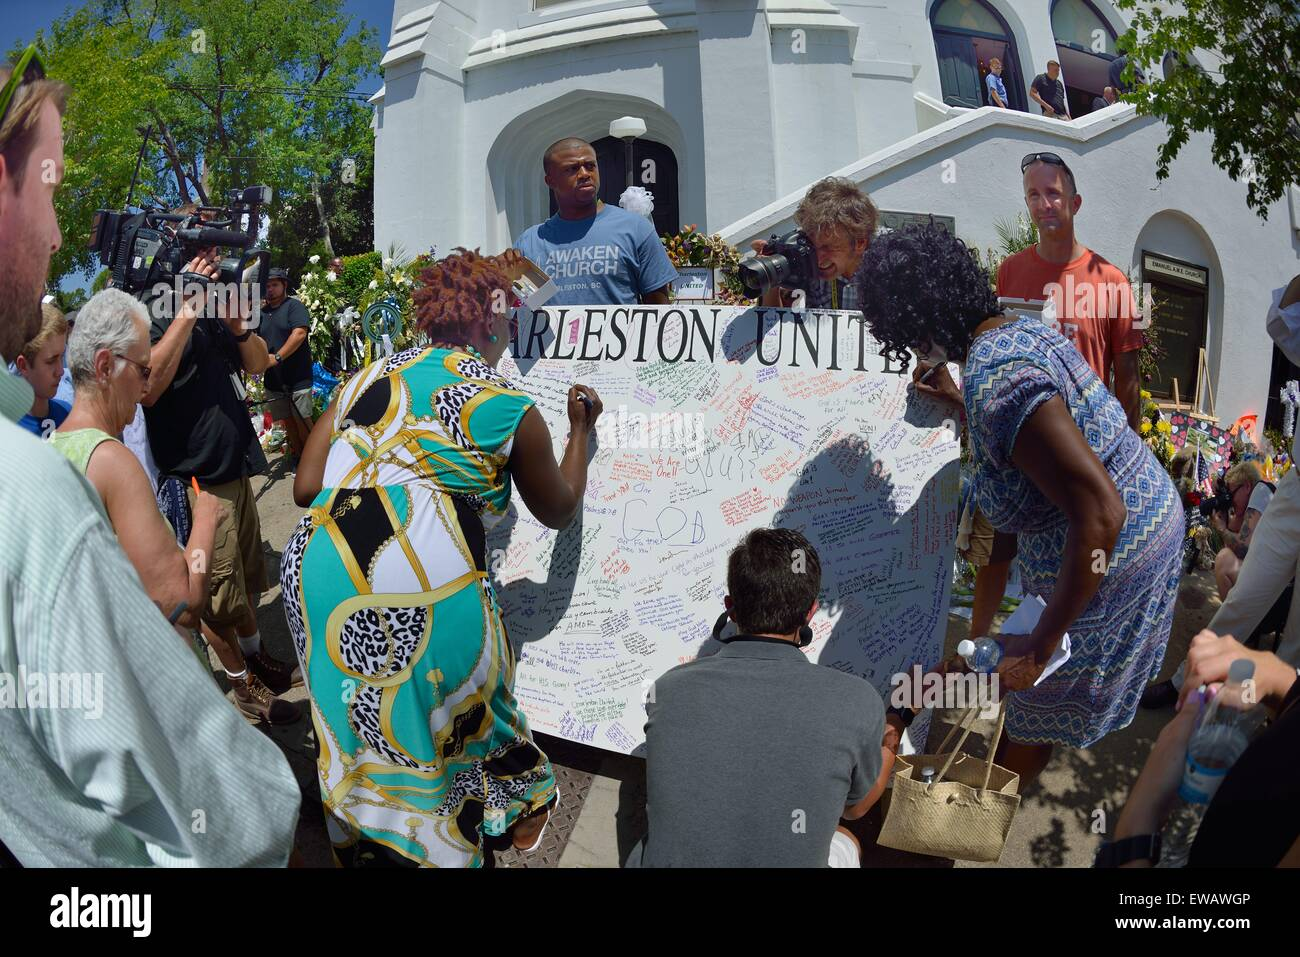 Mourners signing petition for Charleston Unity outside Emanuel African Methodist Episcopal Church in Charleston - Stock Image